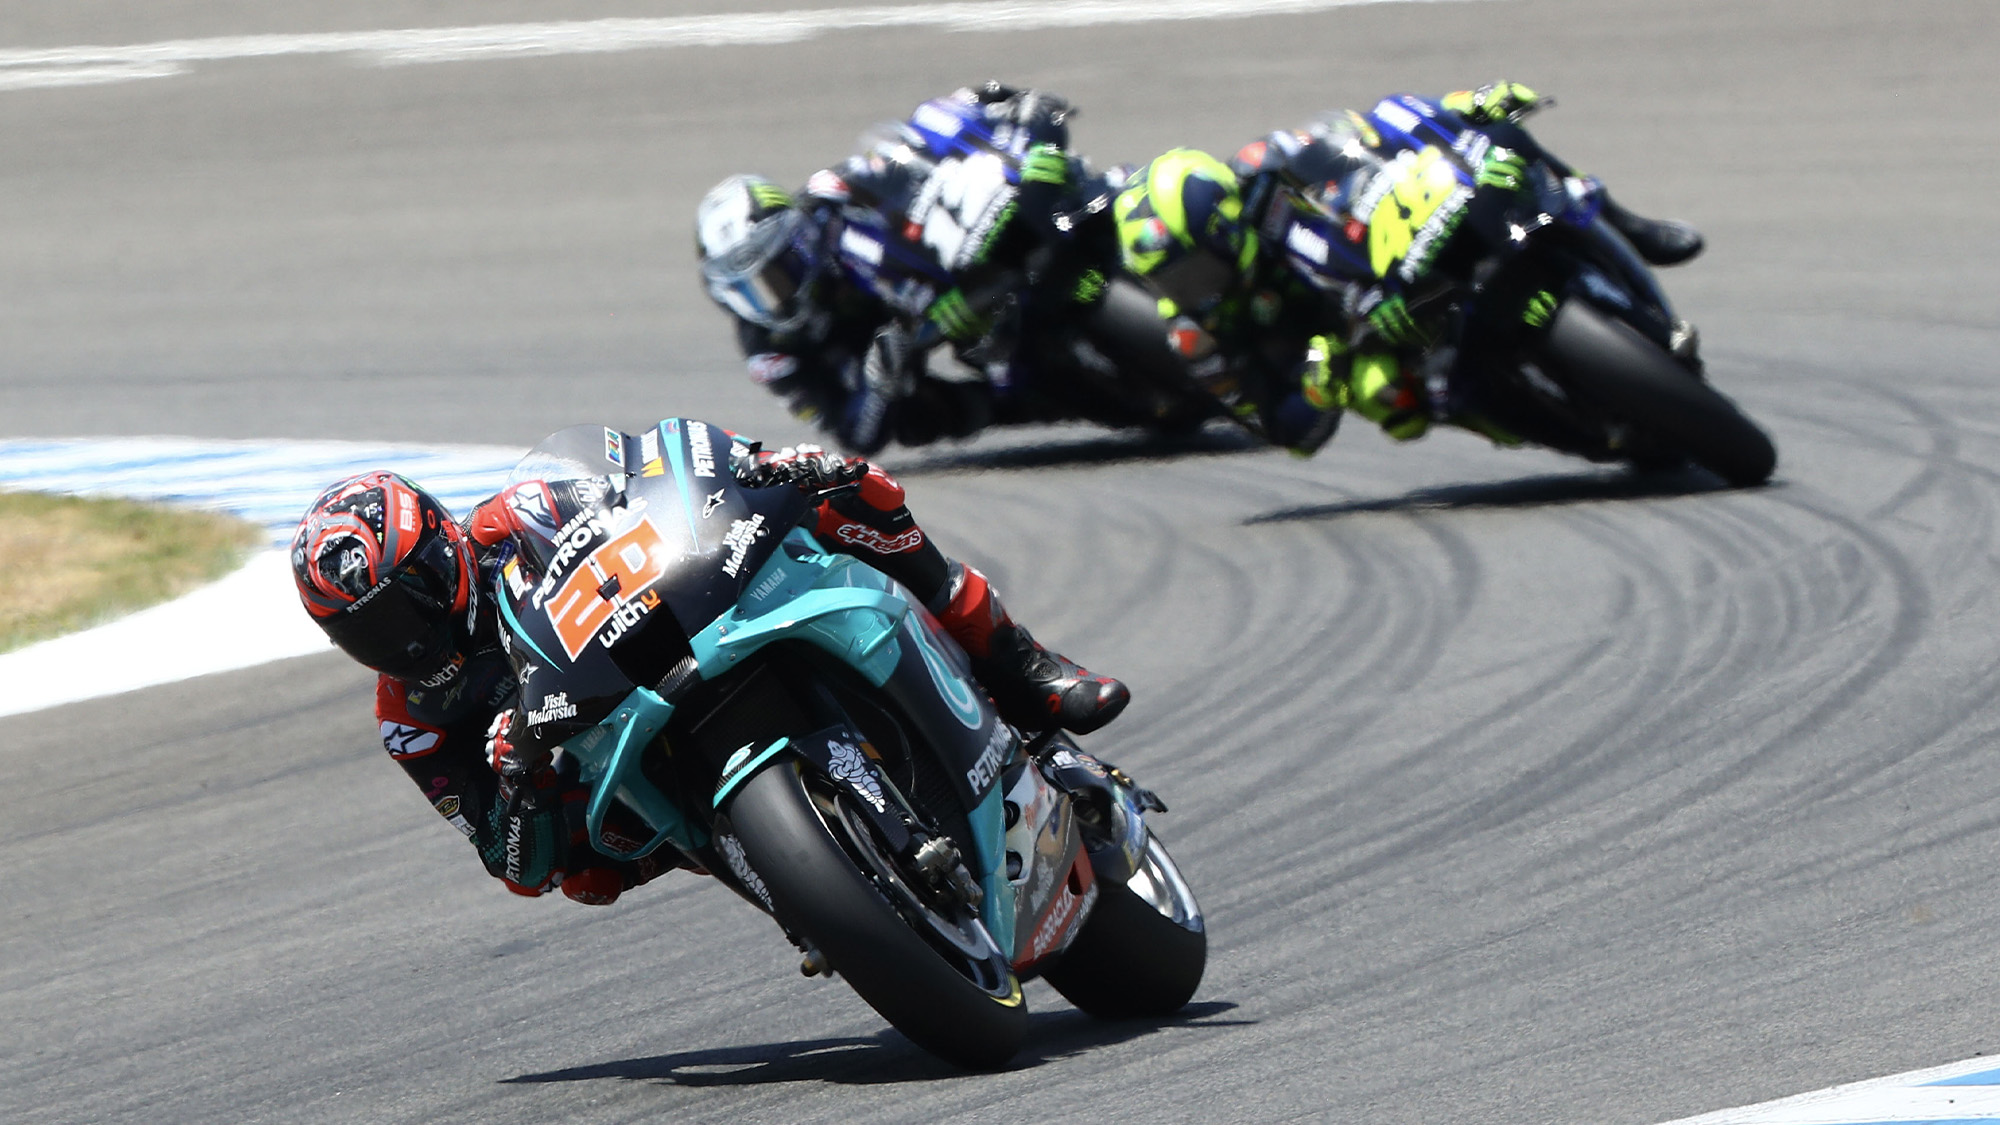 Could Quartararo be MotoGP's first non-factory champ?